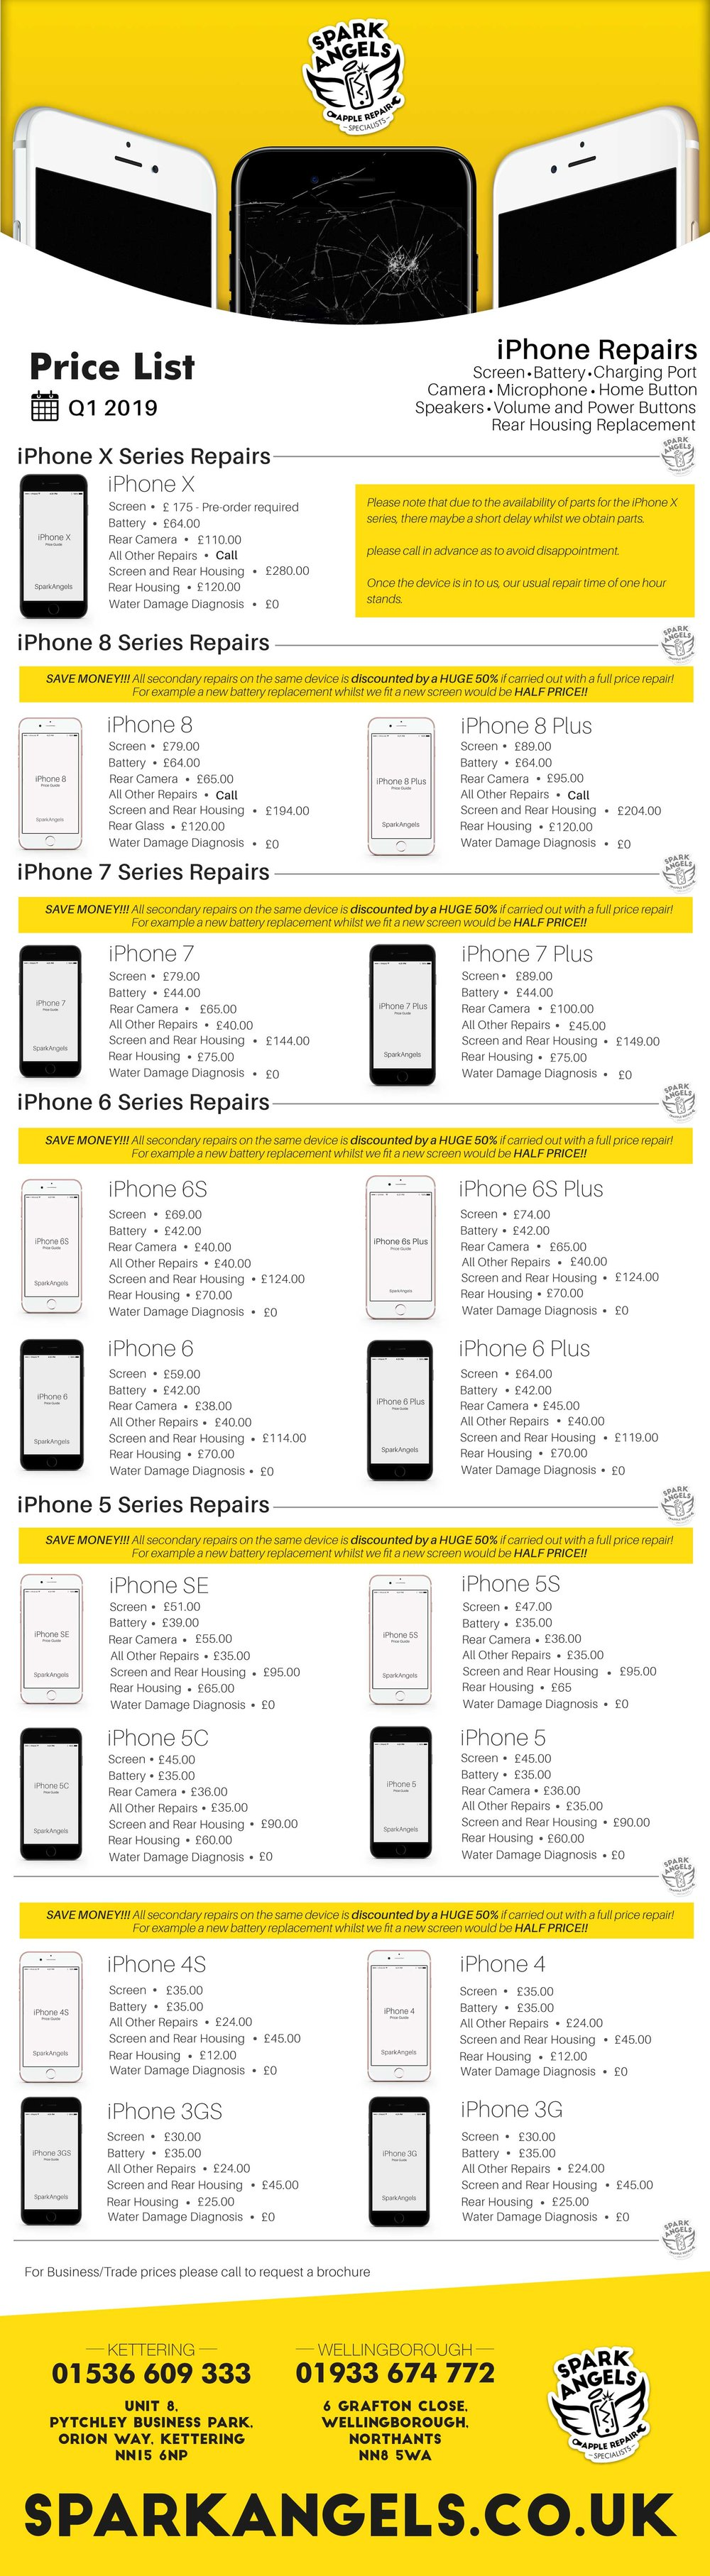 190314_19Q1_iPhone_SCREEN-New-Price-List-Updated_MED1800.jpg